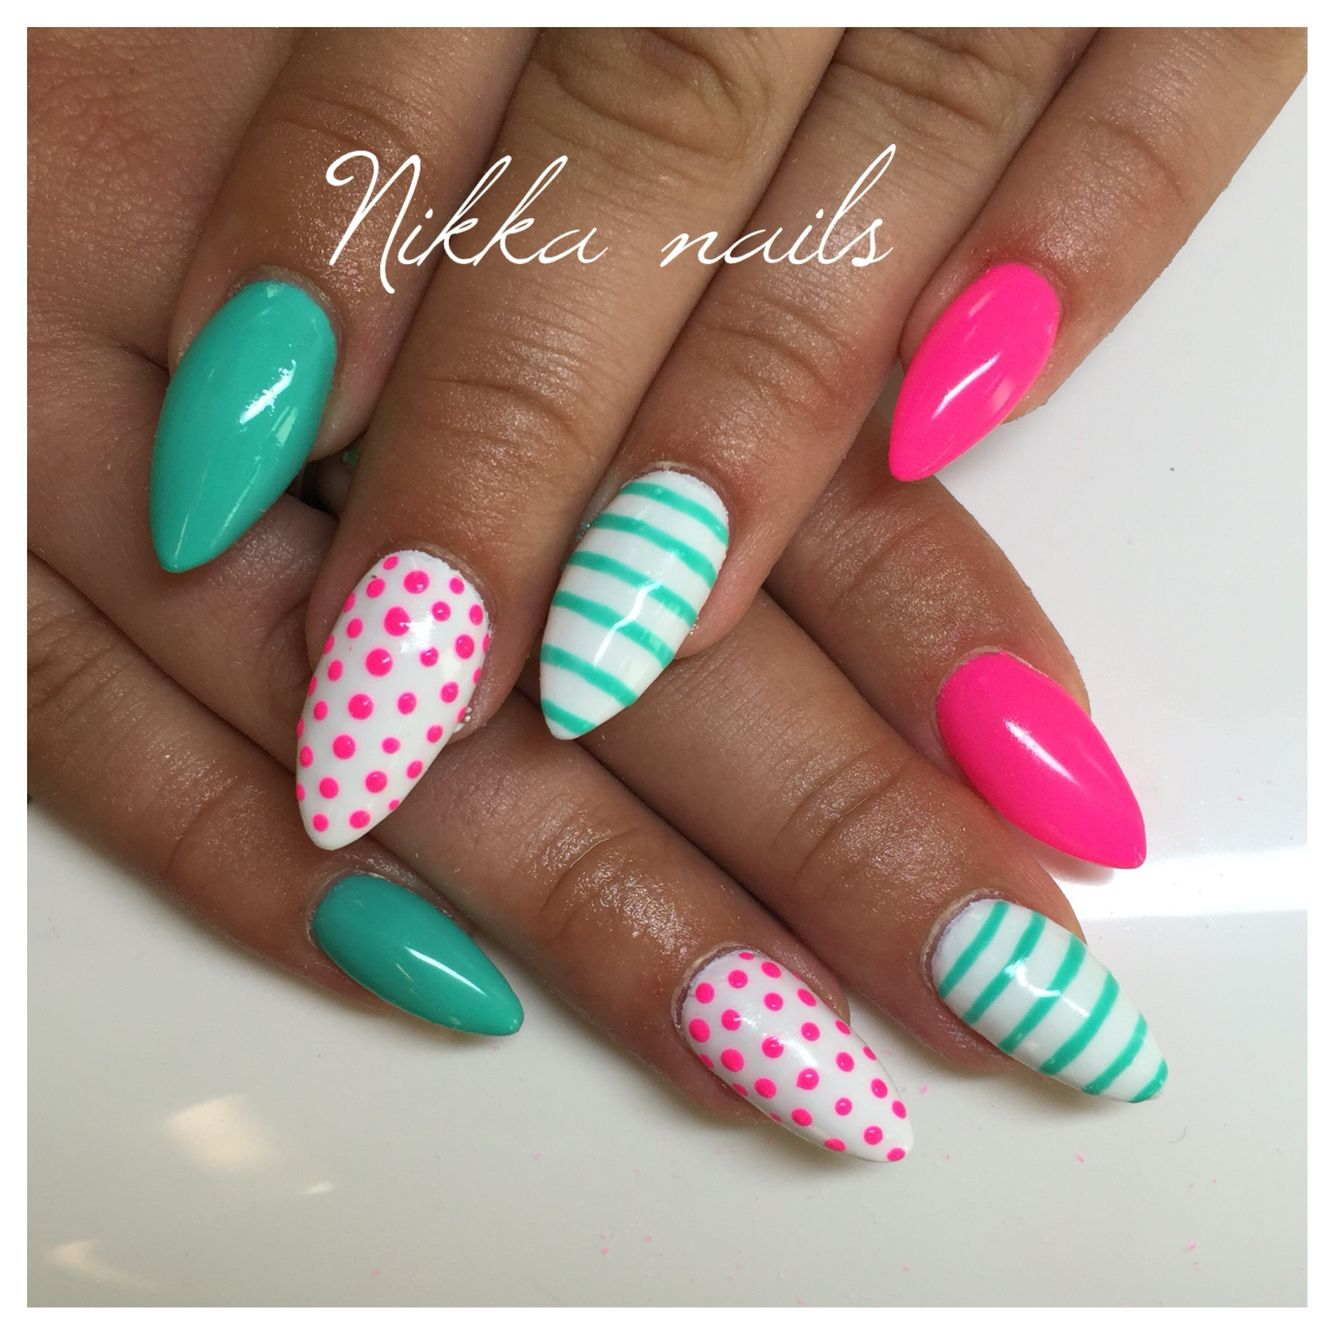 Nikka Nails Summer Nails Pink Nails Crazy Nails Aquamarine Tyrquoise Neon Nails